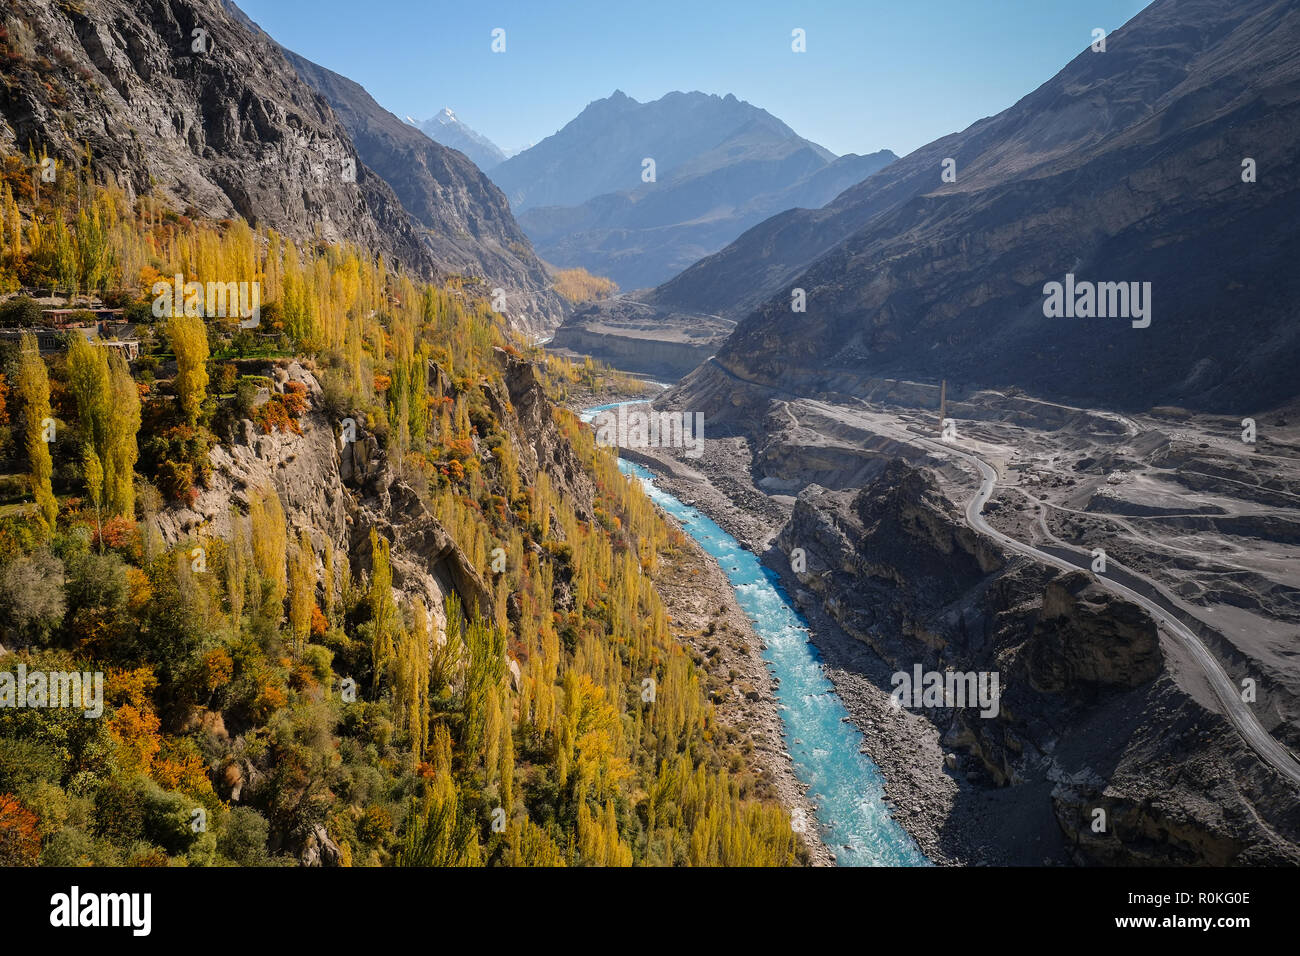 Colorful autumn view of Hunza from Altit fort show blue river flowing along the road through Karakoram mountain range, Gilgit-Baltistan, Pakistan. - Stock Image